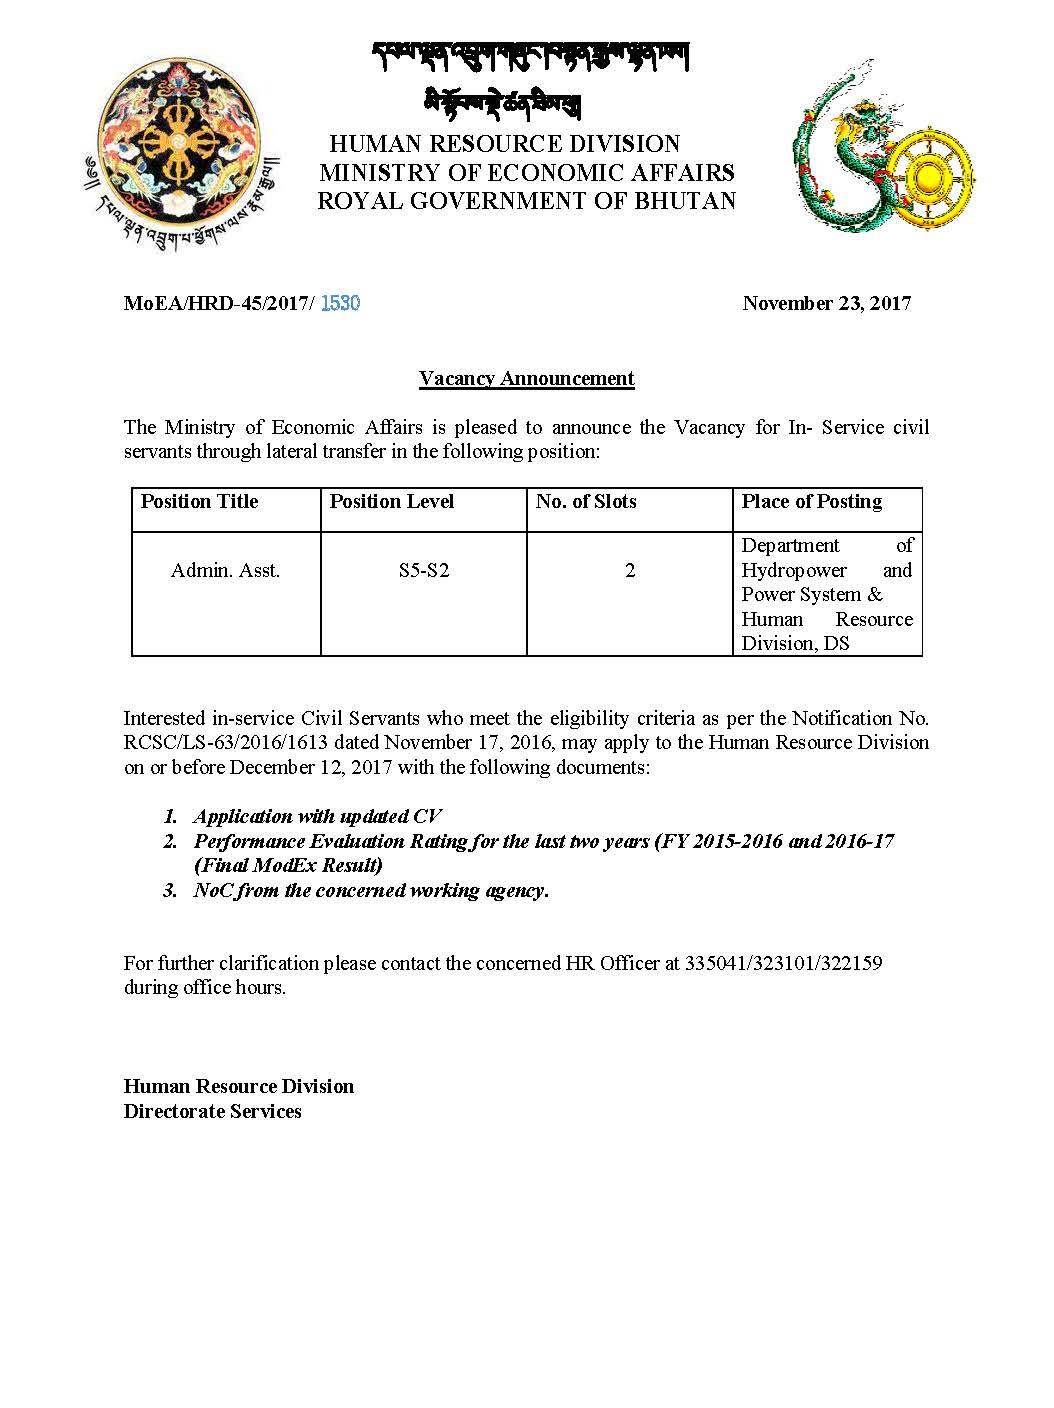 Vacancy Announcement for Administrative Assistant